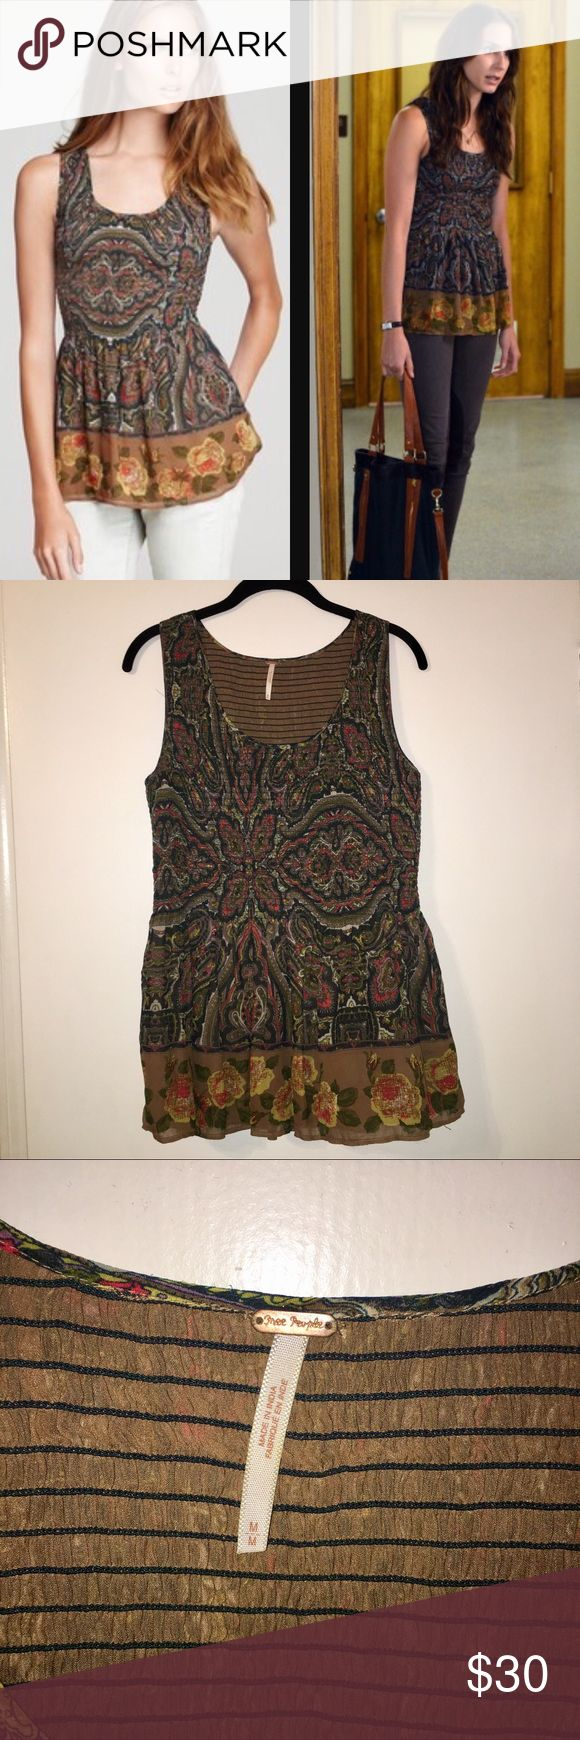 ASO PLL Free People Smocked Tank As seen on Spencer Hastings in Pretty Little Liars! Free people smocked tank top in paisley print. Great used condition! A reposh because it just didn't look good on me. Size medium, and the top has a lot of stretch so it can fit larger boobs. Flaws - a few minor snags and a couple of small holes in the lining (not visible when worn). Make an offer! Bundles are 30% off 2+ items! Free People Tops Tank Tops